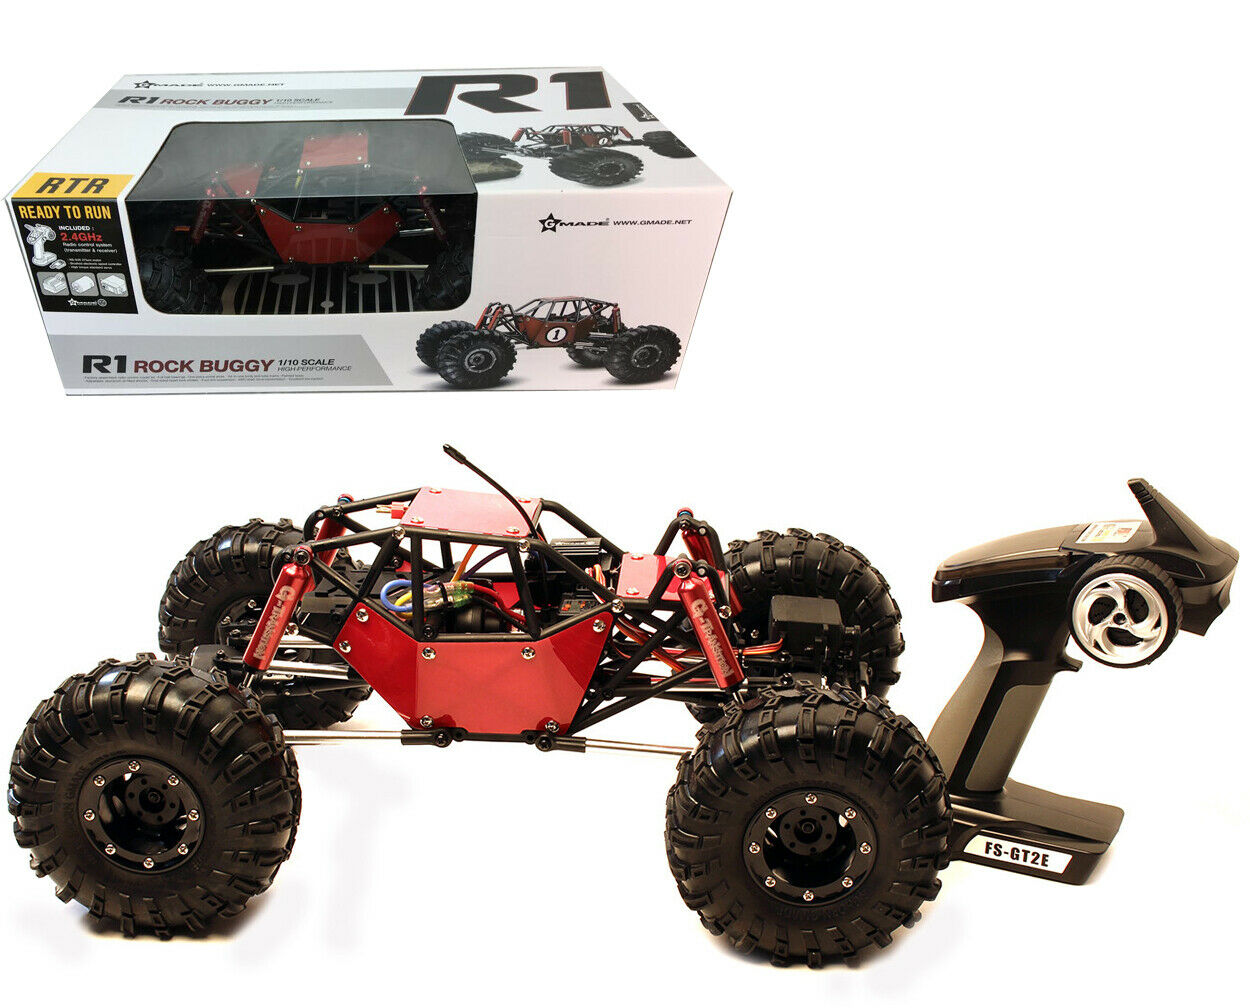 GMADE 1/10 R1 Rock Buggy RTR Tube Frame 4WD Rock Crawler w/ 2.4GHz ...